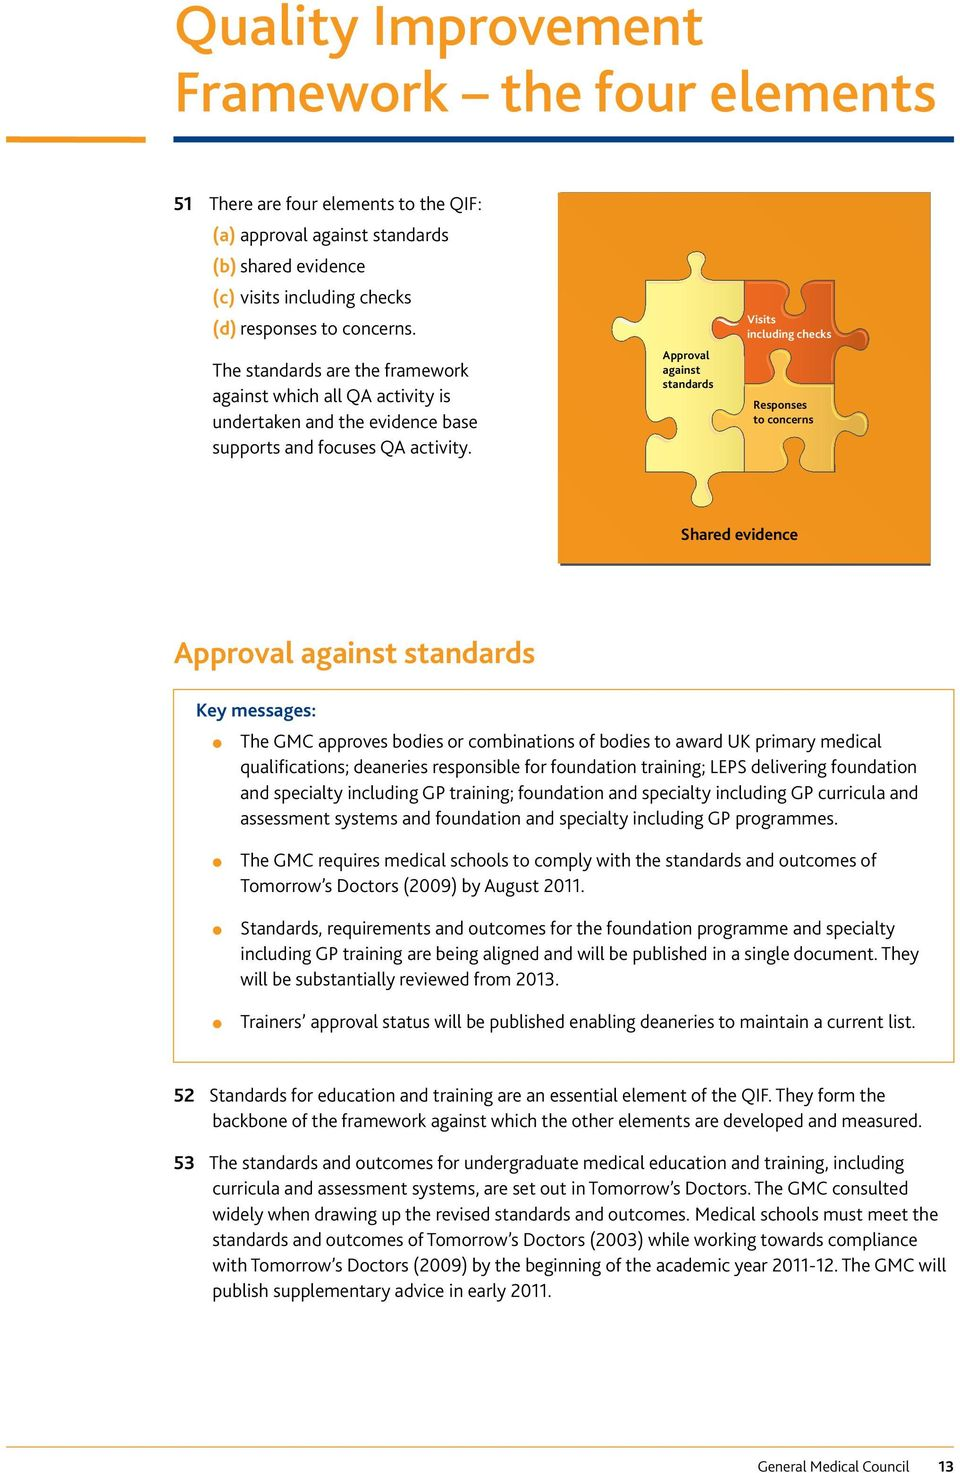 Approva against standards Visits incuding checks Responses to concerns Shared evidence Approva against standards Key messages: The GMC approves bodies or combinations of bodies to award UK primary